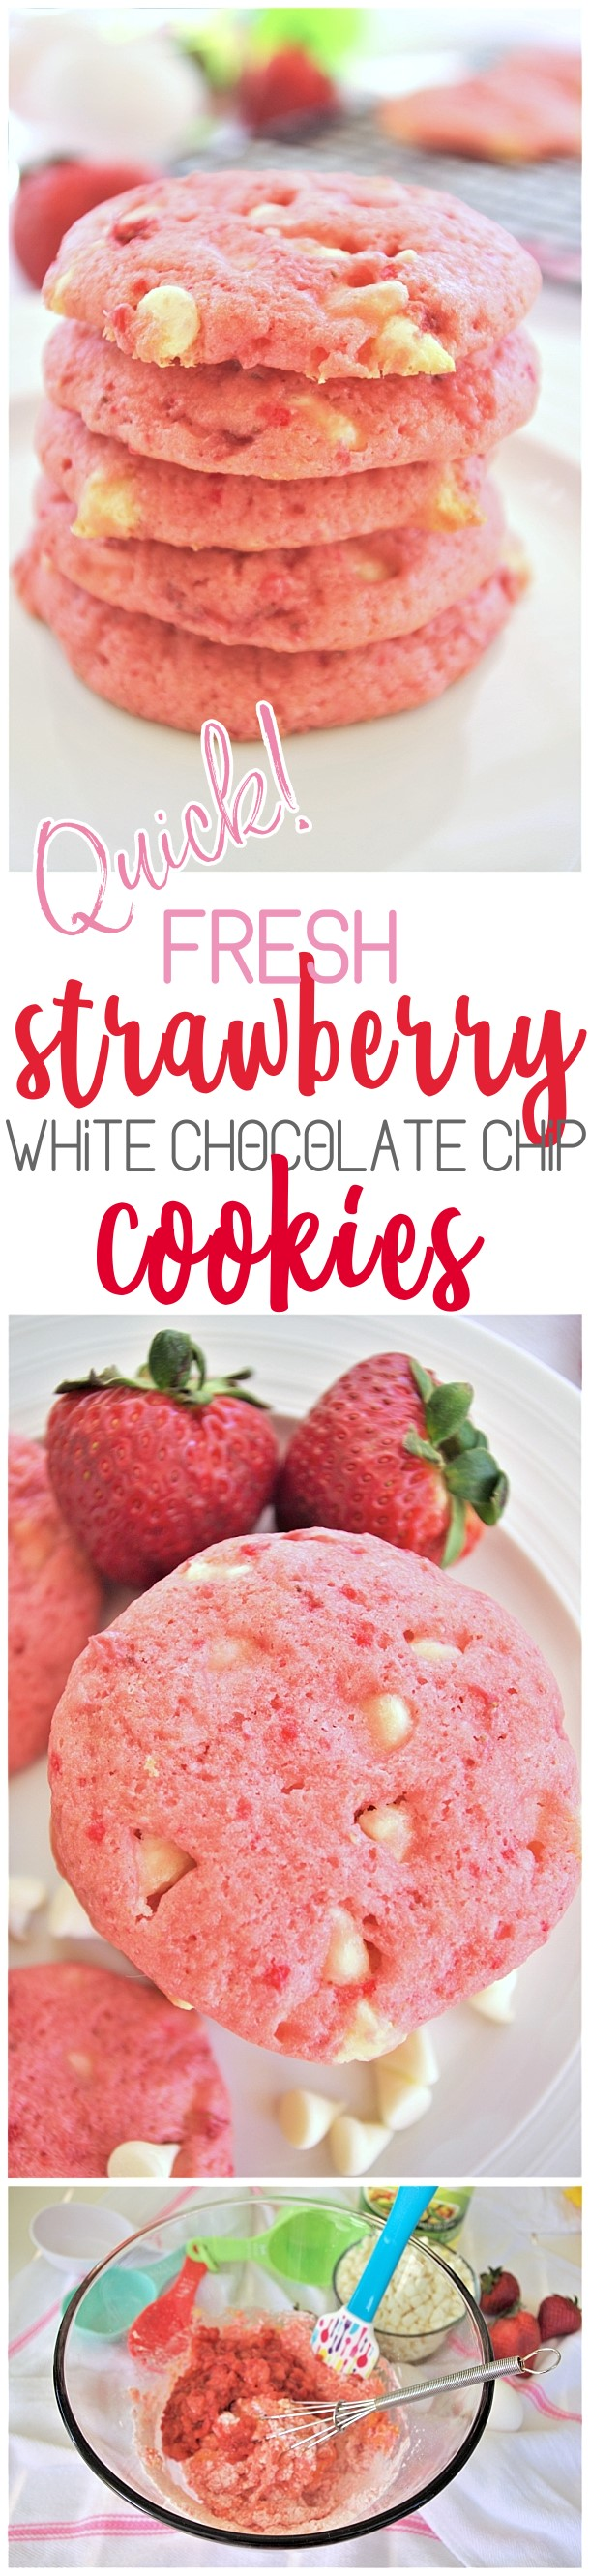 Fresh Strawberry White Chocolate Chip Cookies Dessert Easy and Quick Treats Recipe - #strawberrycookies #strawberrywhitechocolatecookies #easycookies #pinkcookies #valentinesdaydesserts #valentinesday #babyshowerdesserts #bridalshowerdesserts #brunch #springdesserts #summerdesserts This recipe is so quick, easy and PERFECT for so many occasions. Darling pink gender reveal baby girl showers, Valentine's Day desserts and gift plates, bridal shower dessert tables, any spring and summer birthday party or reason for celebration! via Dreaming in DIY